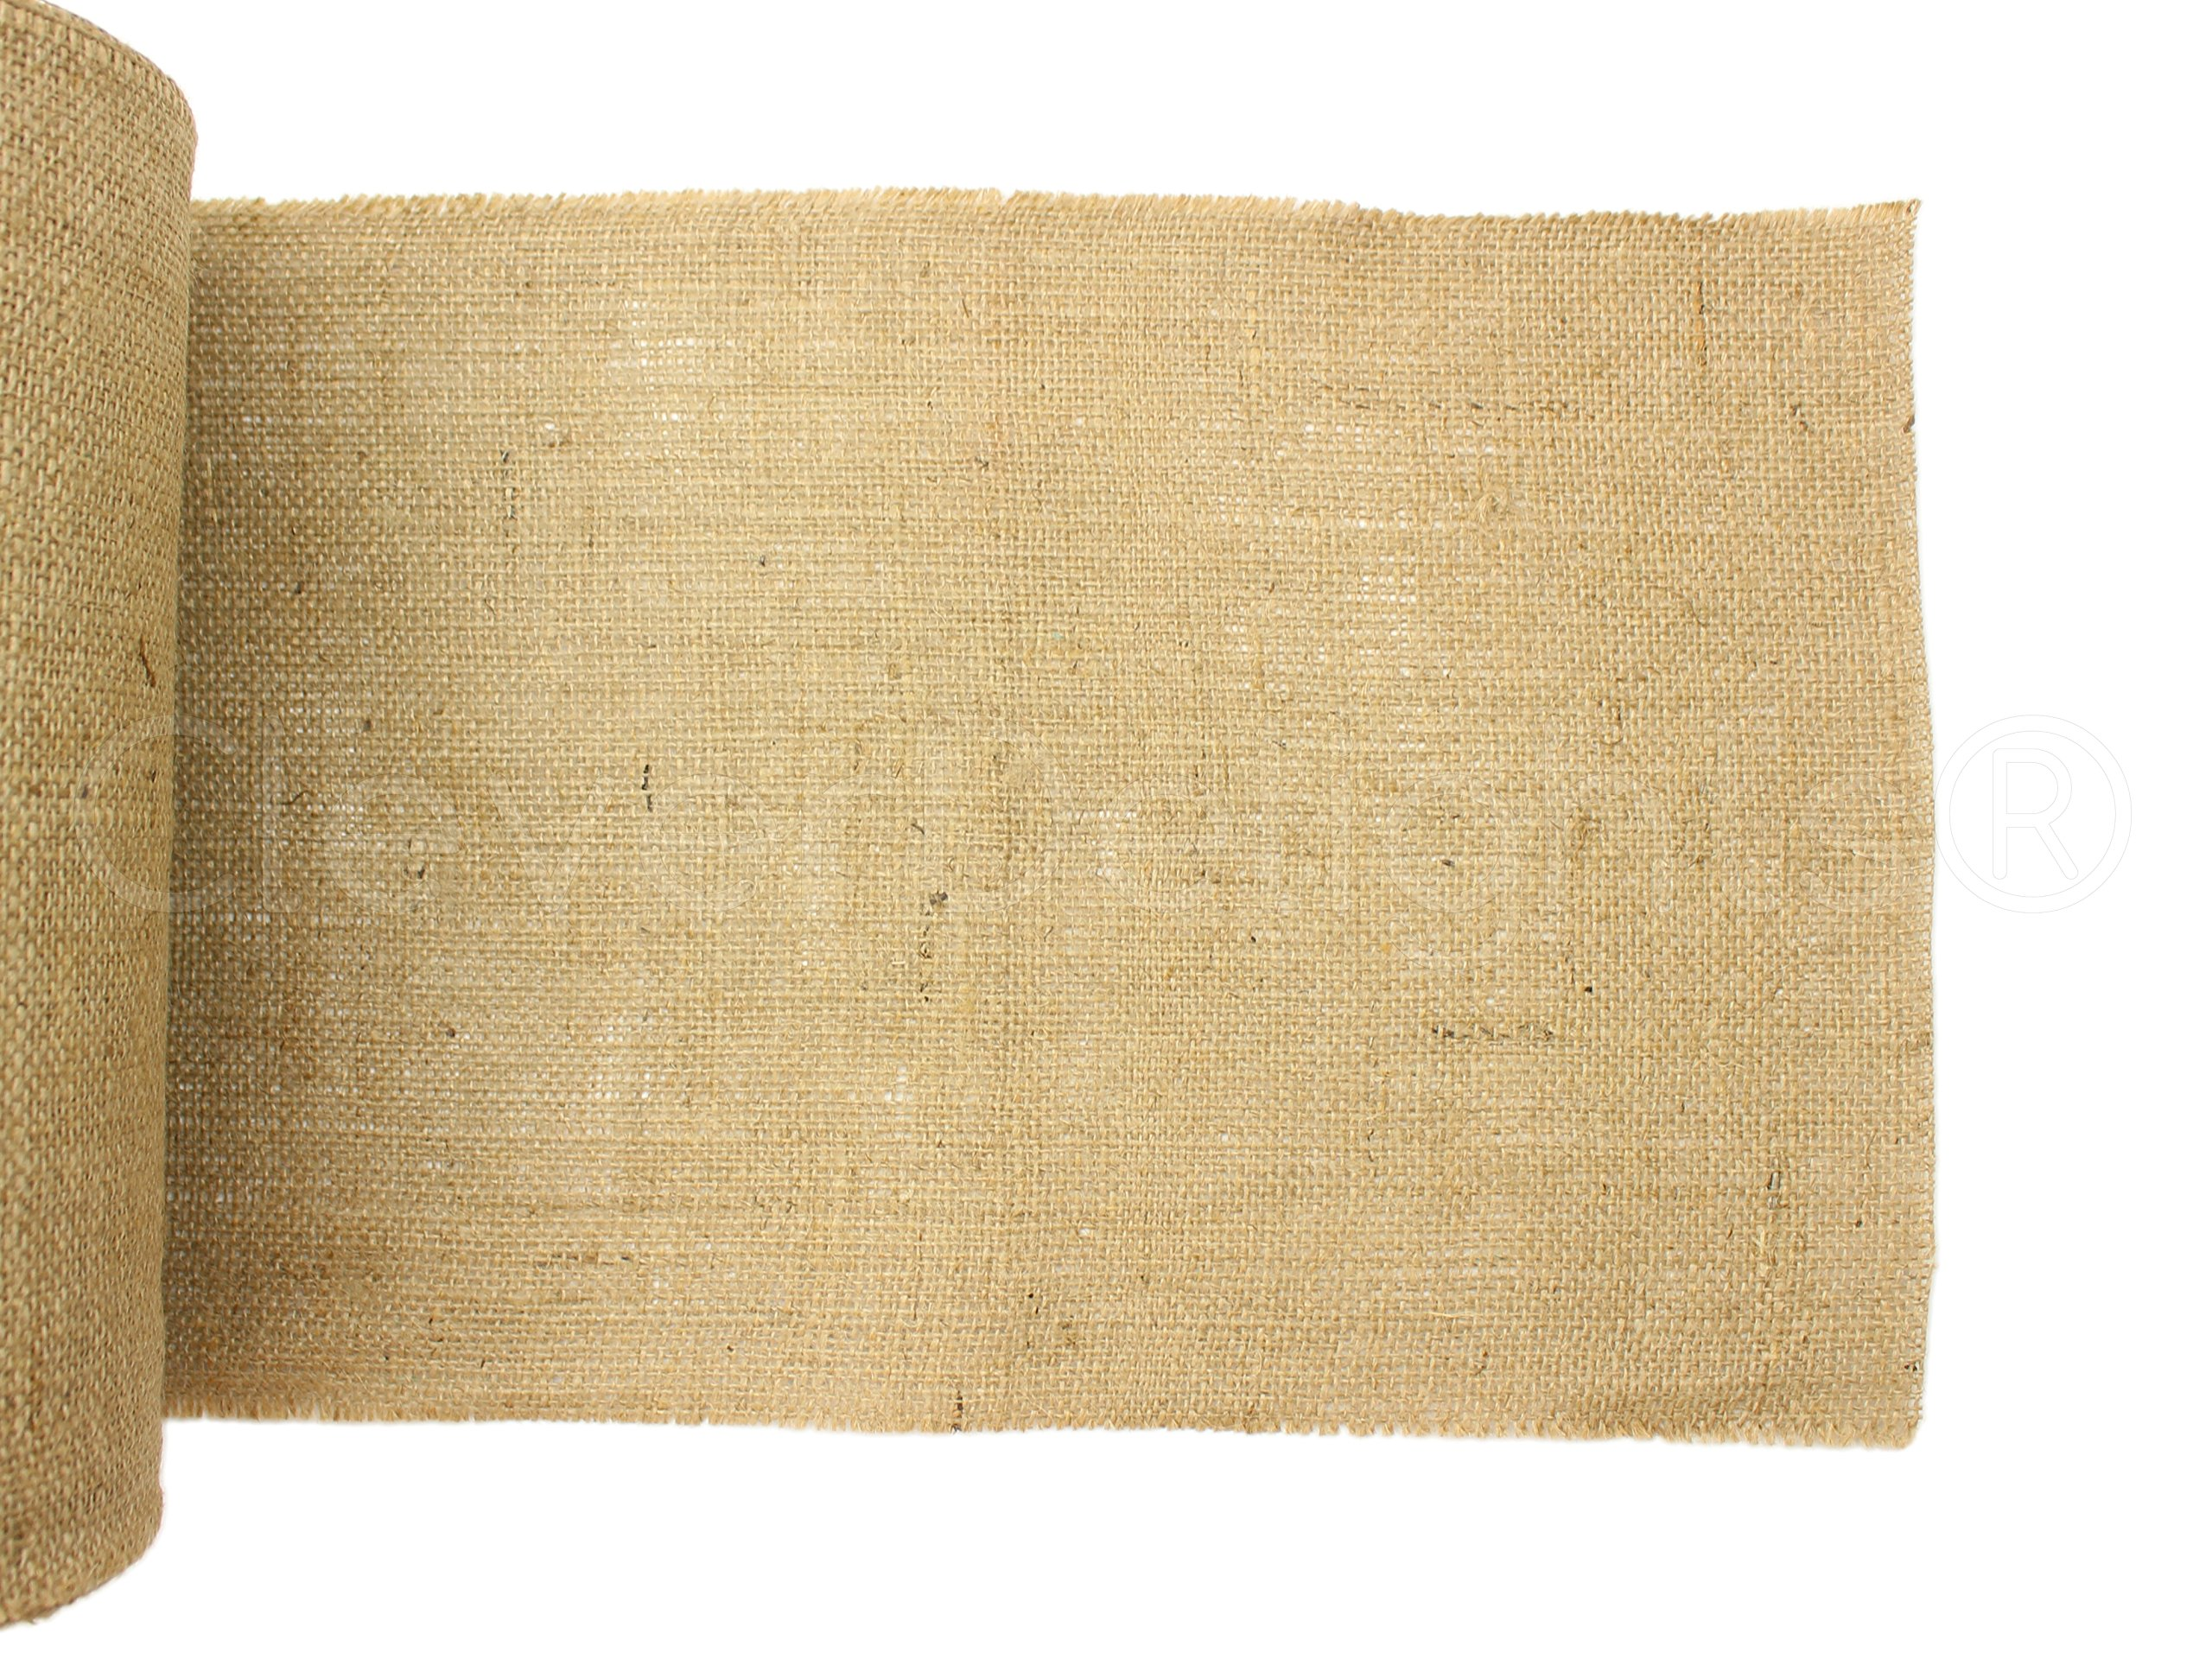 CleverDelights 12'' Natural Burlap - Industrial Grade - 100 Yard Roll - Tight-Weave Jute Burlap Fabric by CleverDelights (Image #2)